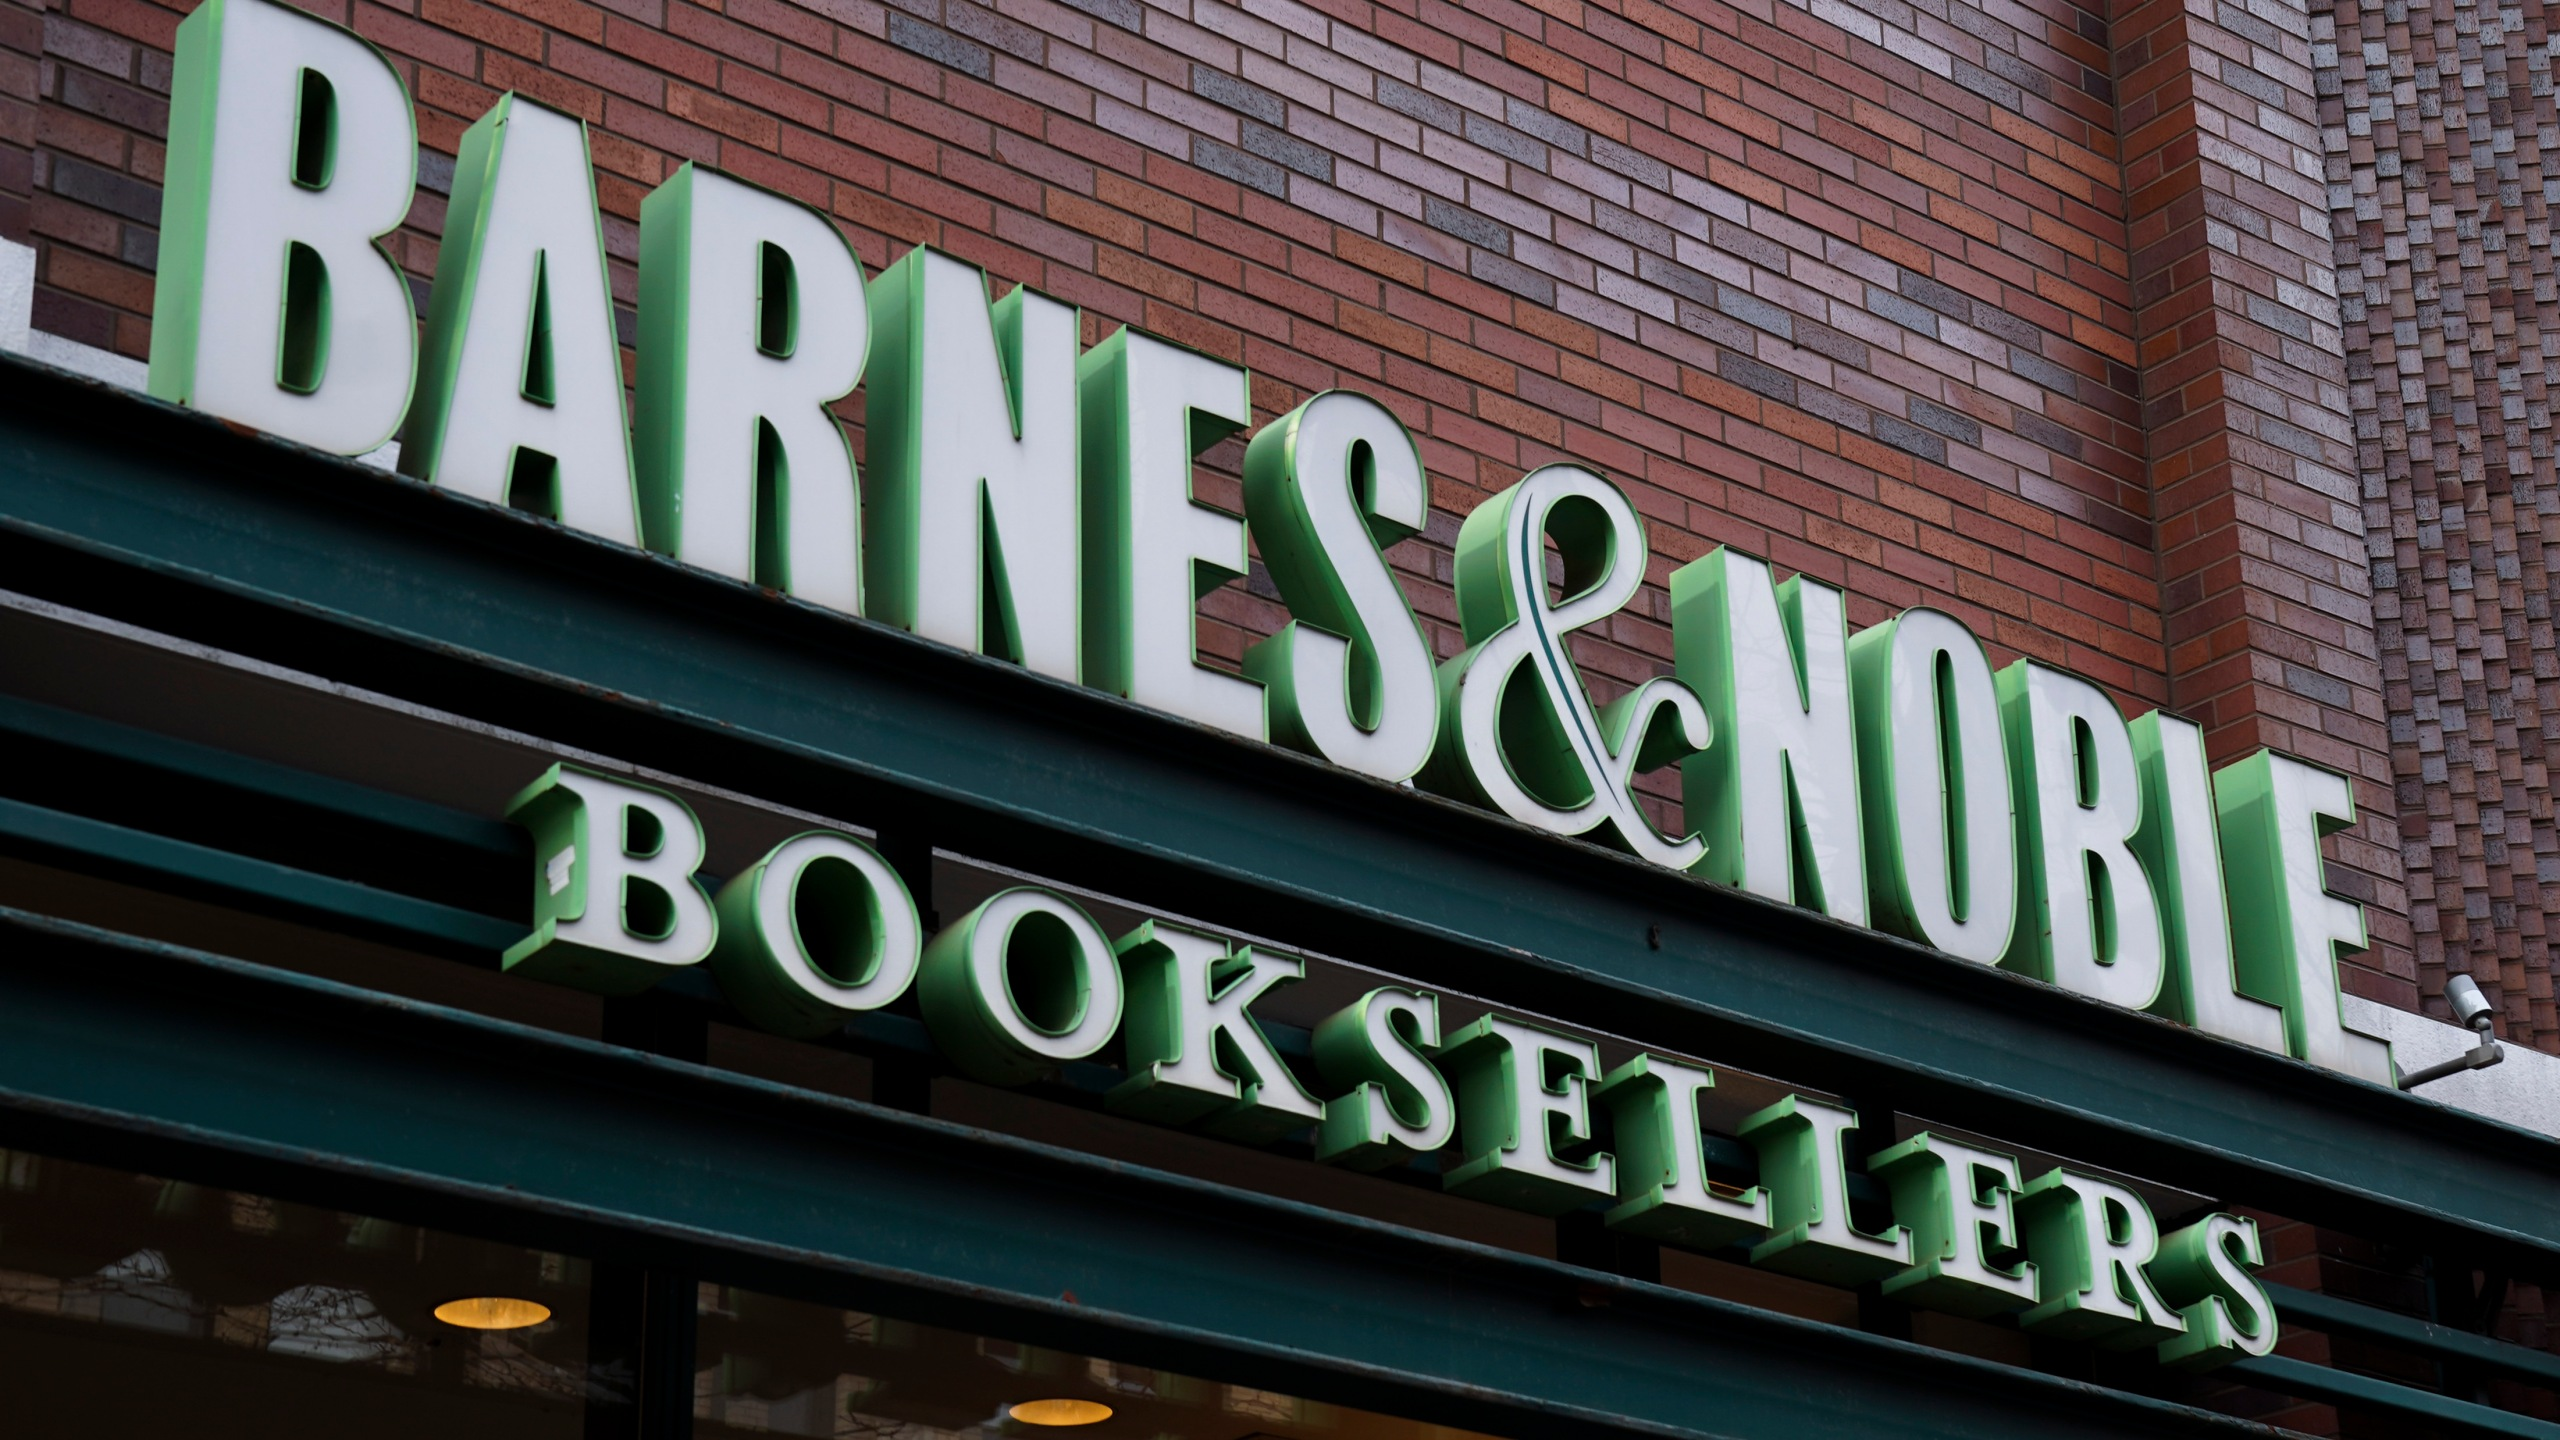 Signage for a Barnes & Noble bookstore stands above the entrance, Jan. 10, 2019, in the Brooklyn borough of New York City. (Credit: Drew Angerer/Getty Images)